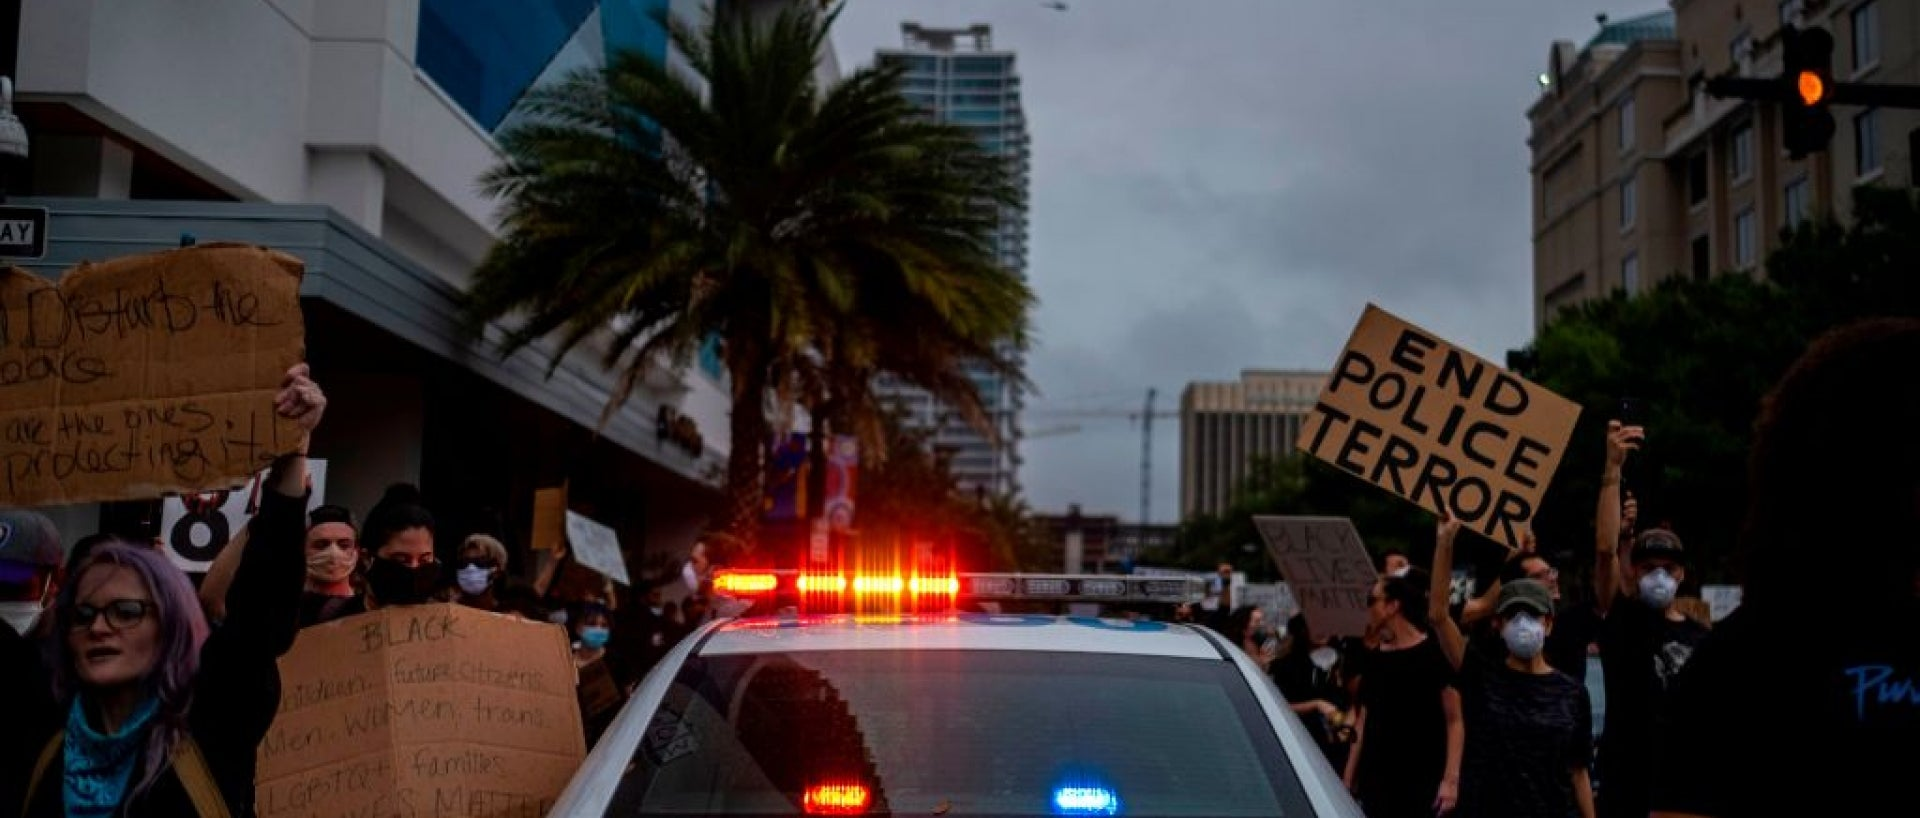 Image of police car driving through crowd of protestors against police brutality